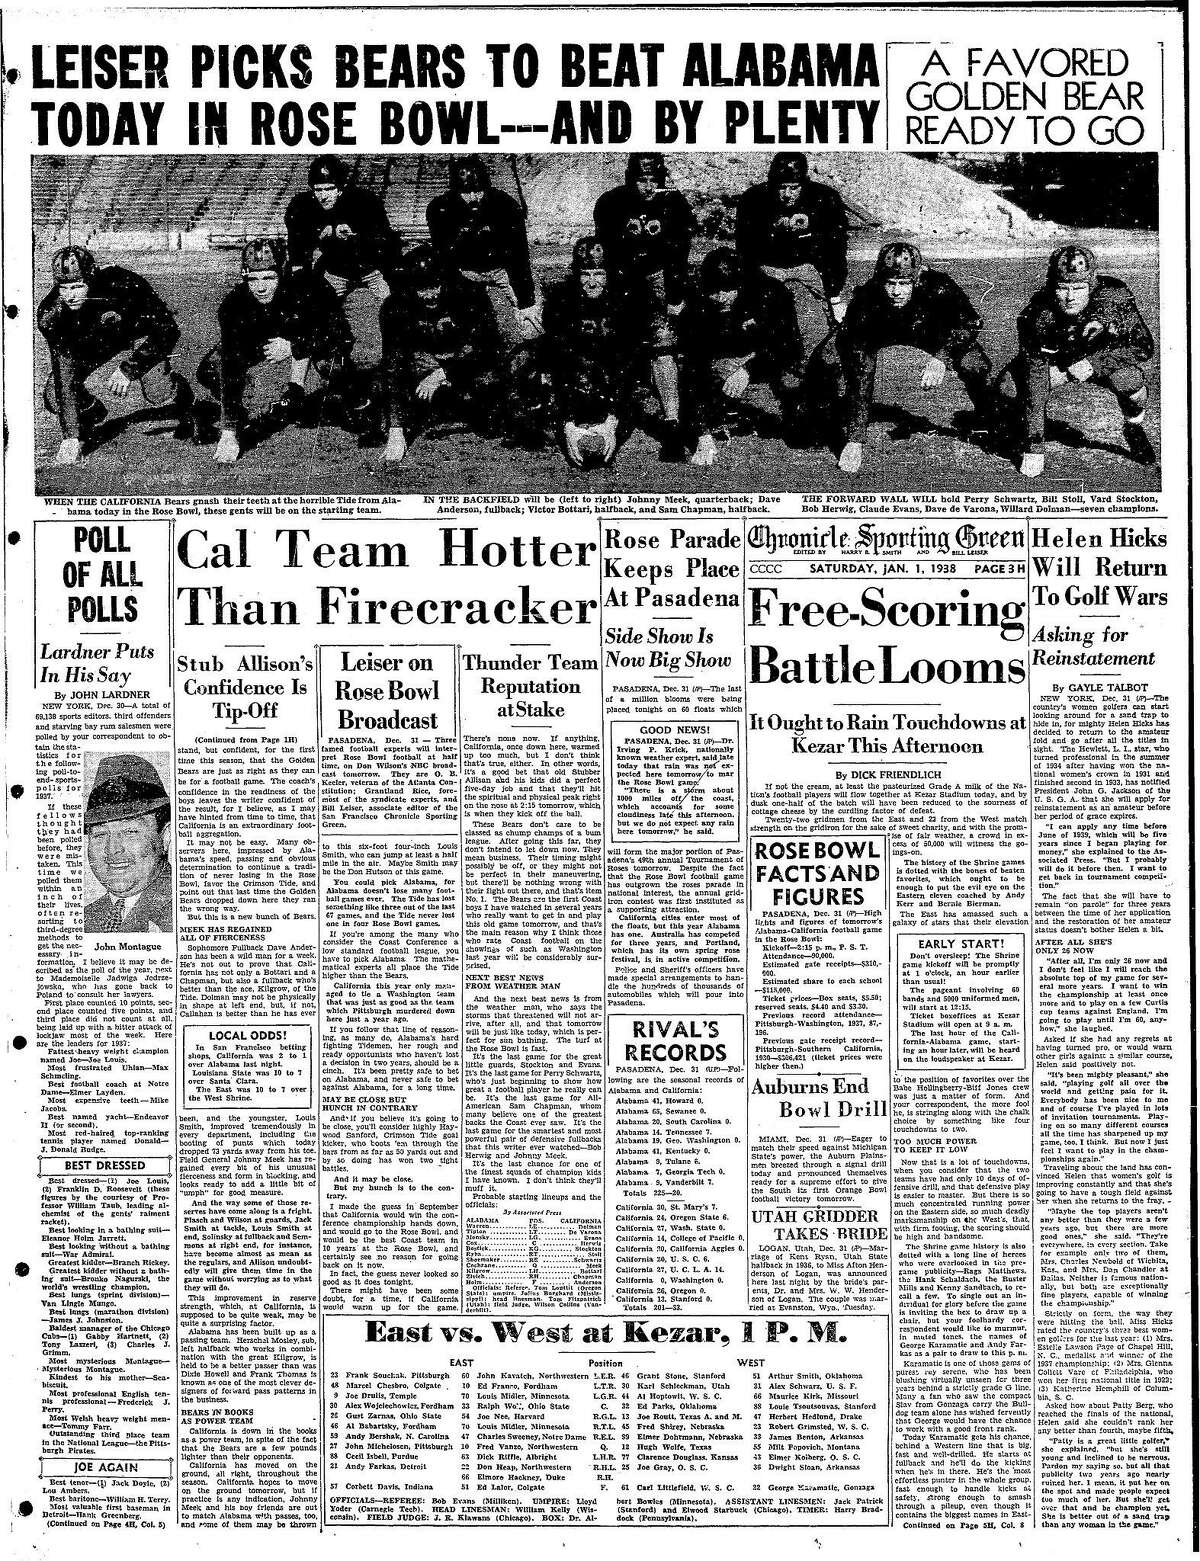 Chronicle Sports front page on January 1, 1938, with Cal Bears playing Alabama in the Rose Bowl